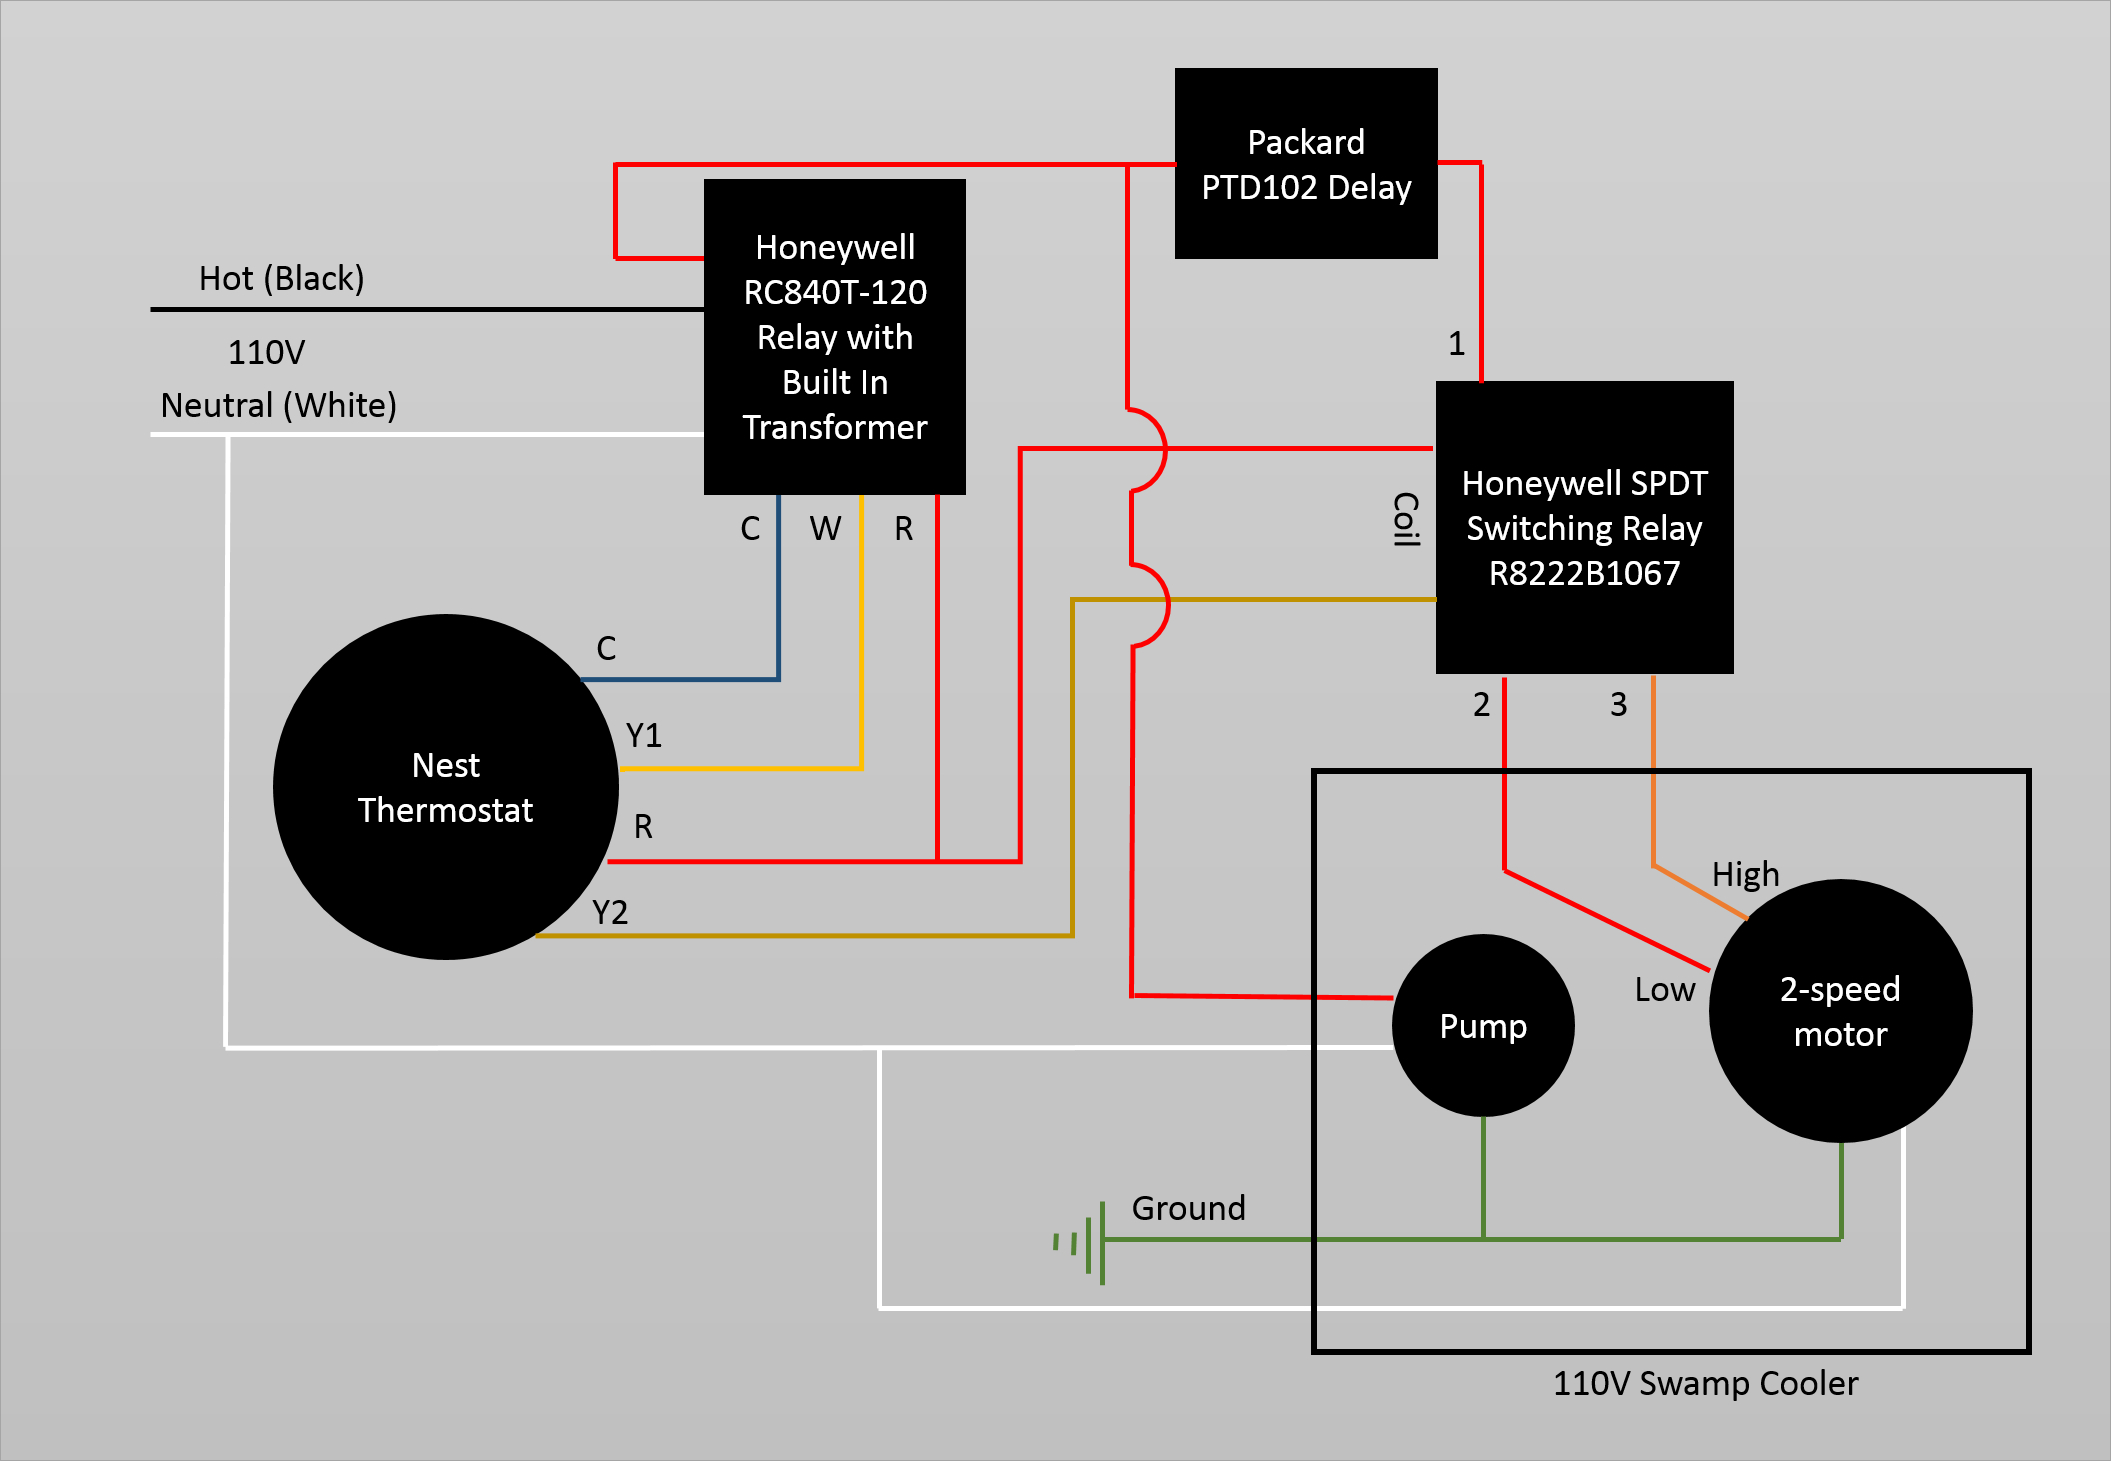 Wiring - Controlling 110V Swamp Cooler Using Nest Thermostat - Home - Nest Wiring Diagram 4 Wires